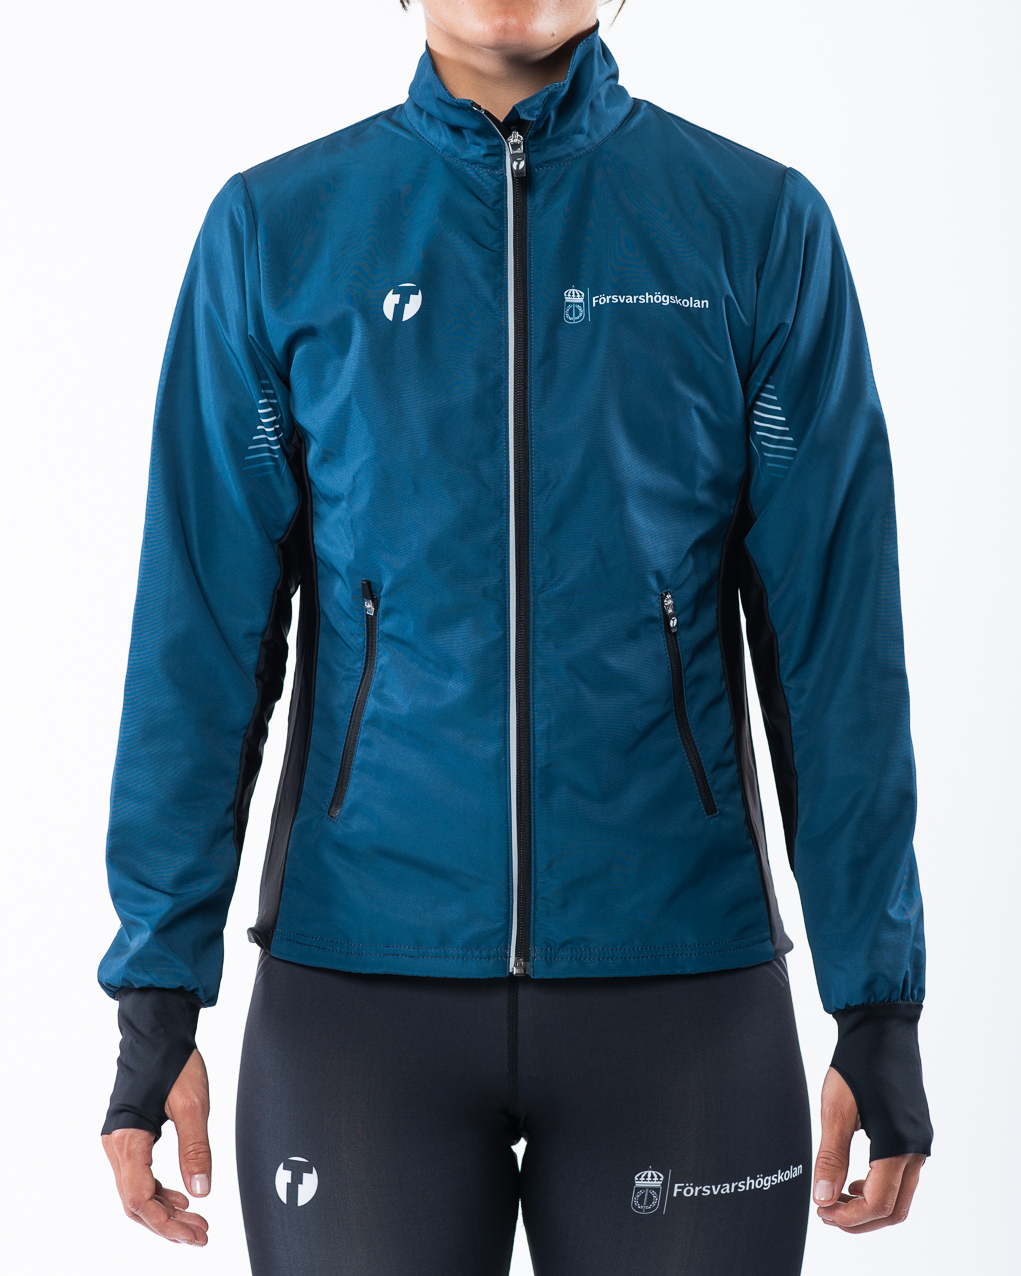 Women's running jacket front